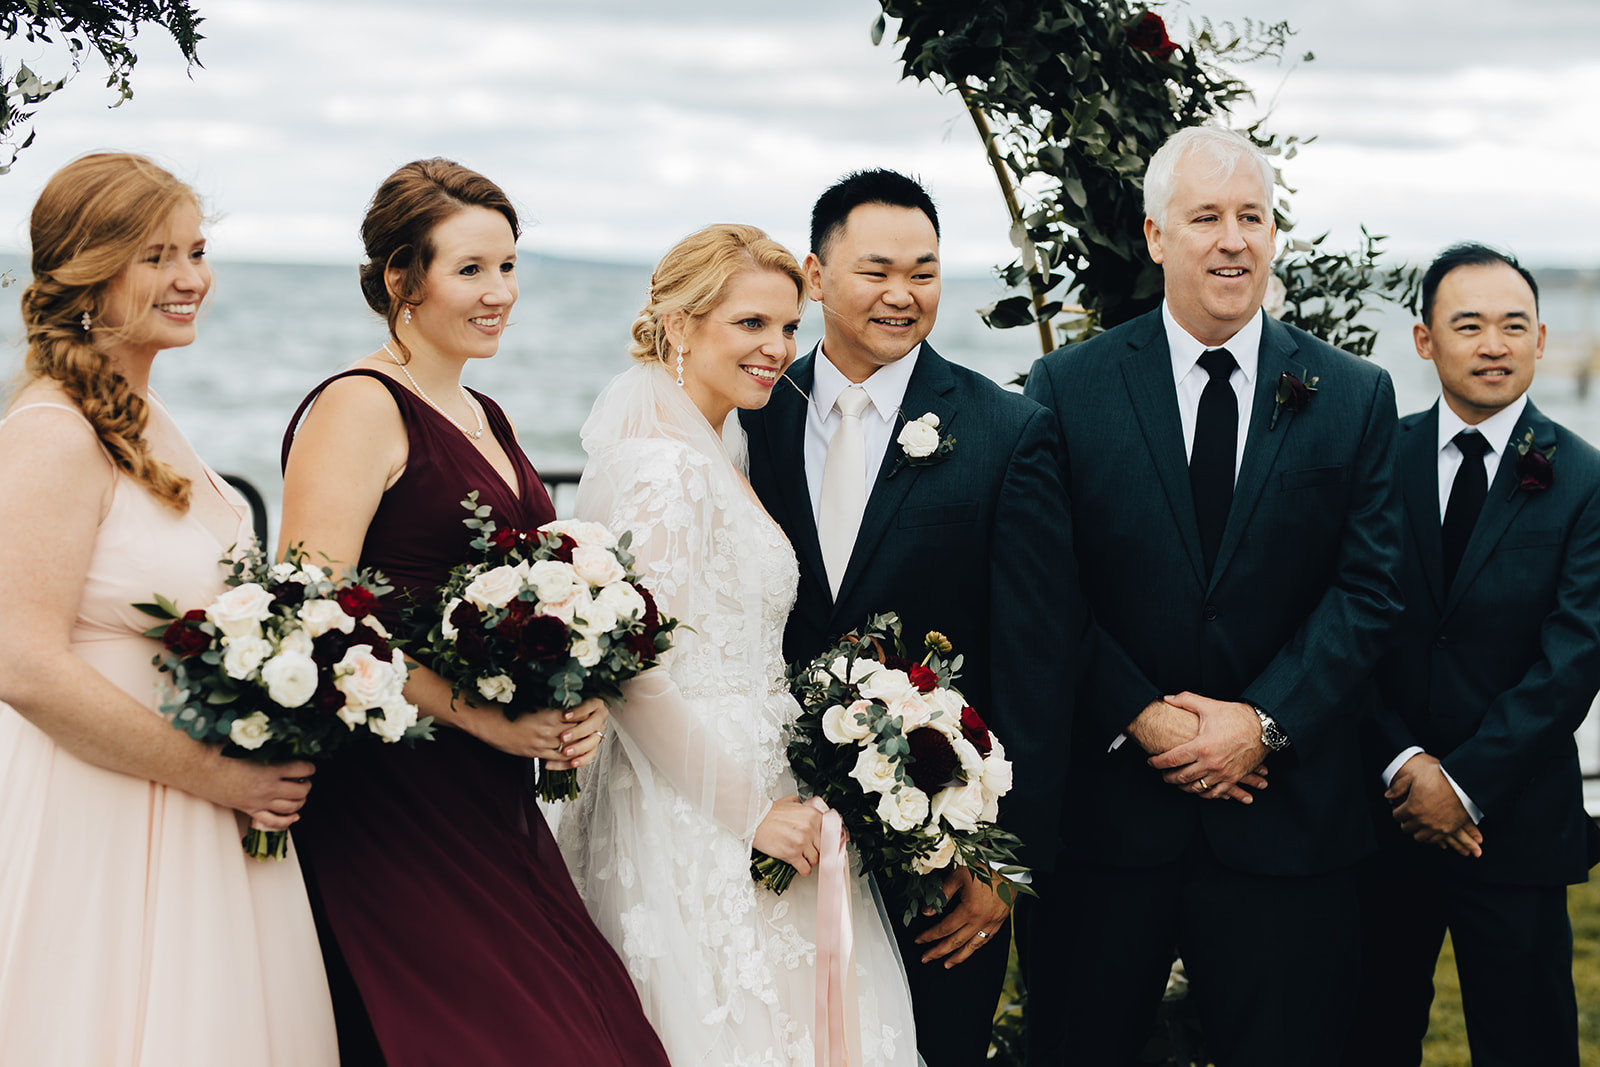 Bridal party smiling together by water